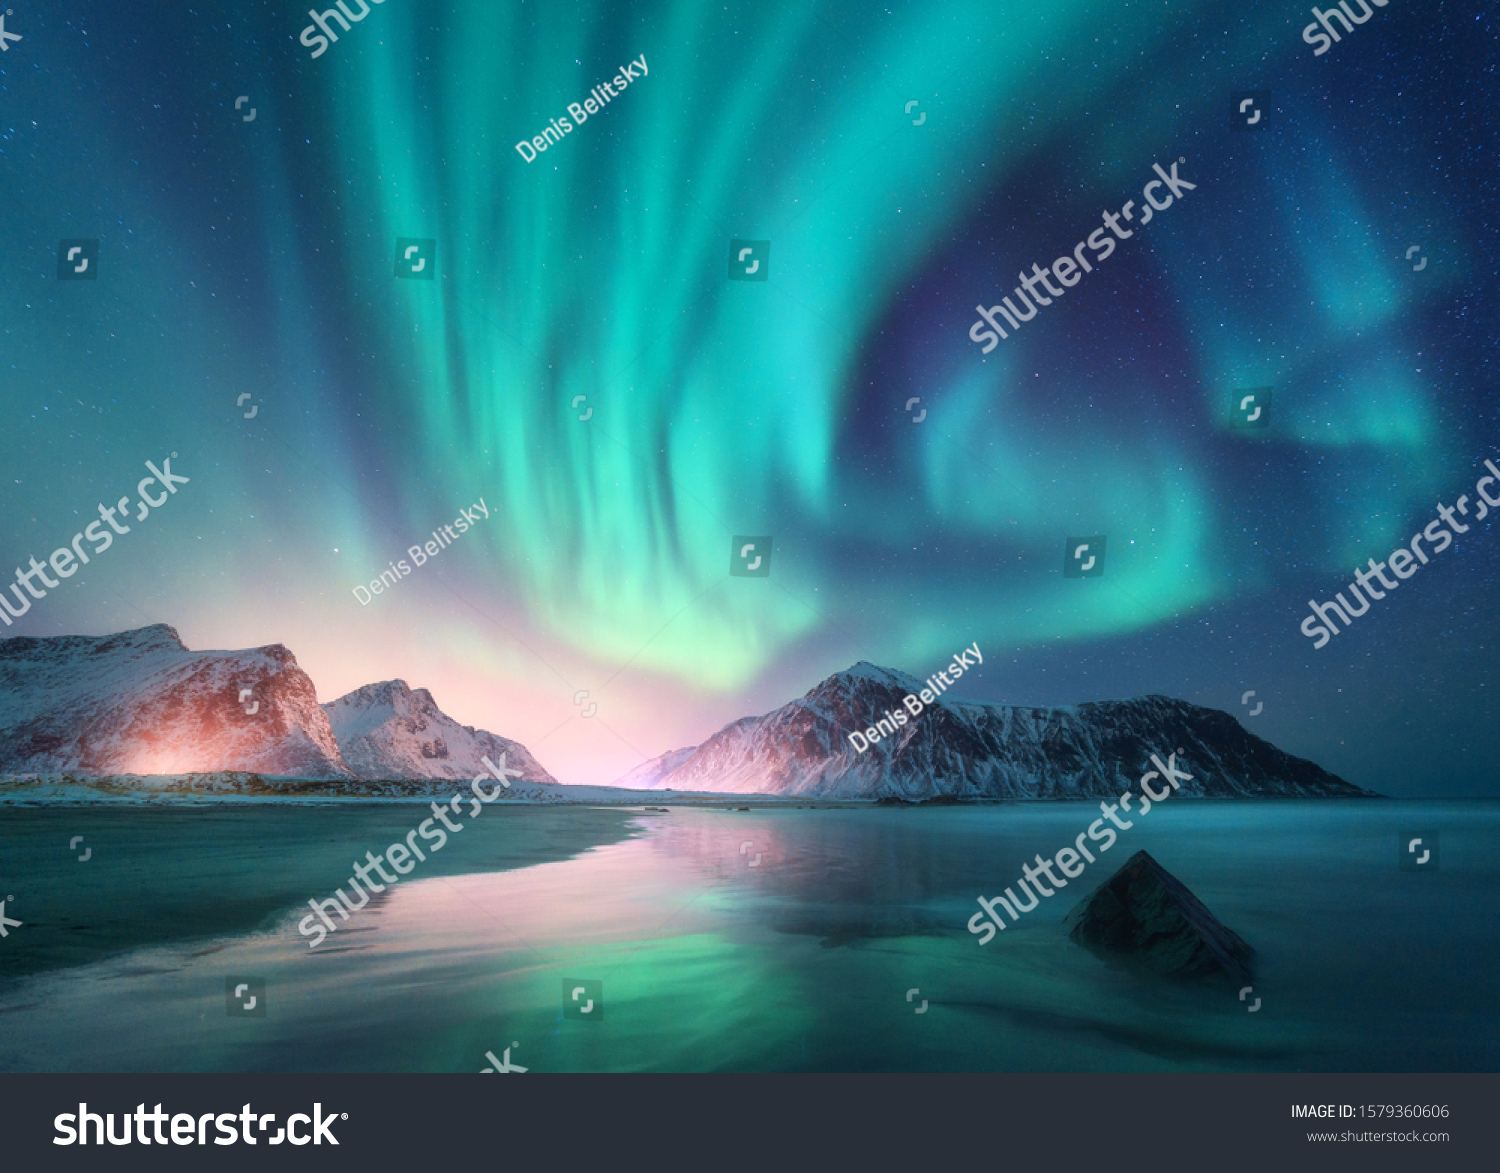 Aurora borealis over the sea, snowy mountains and city lights at night. Northern lights in Lofoten islands, Norway. Starry sky with polar lights. Winter landscape with aurora, reflection, sandy beach  #1579360606